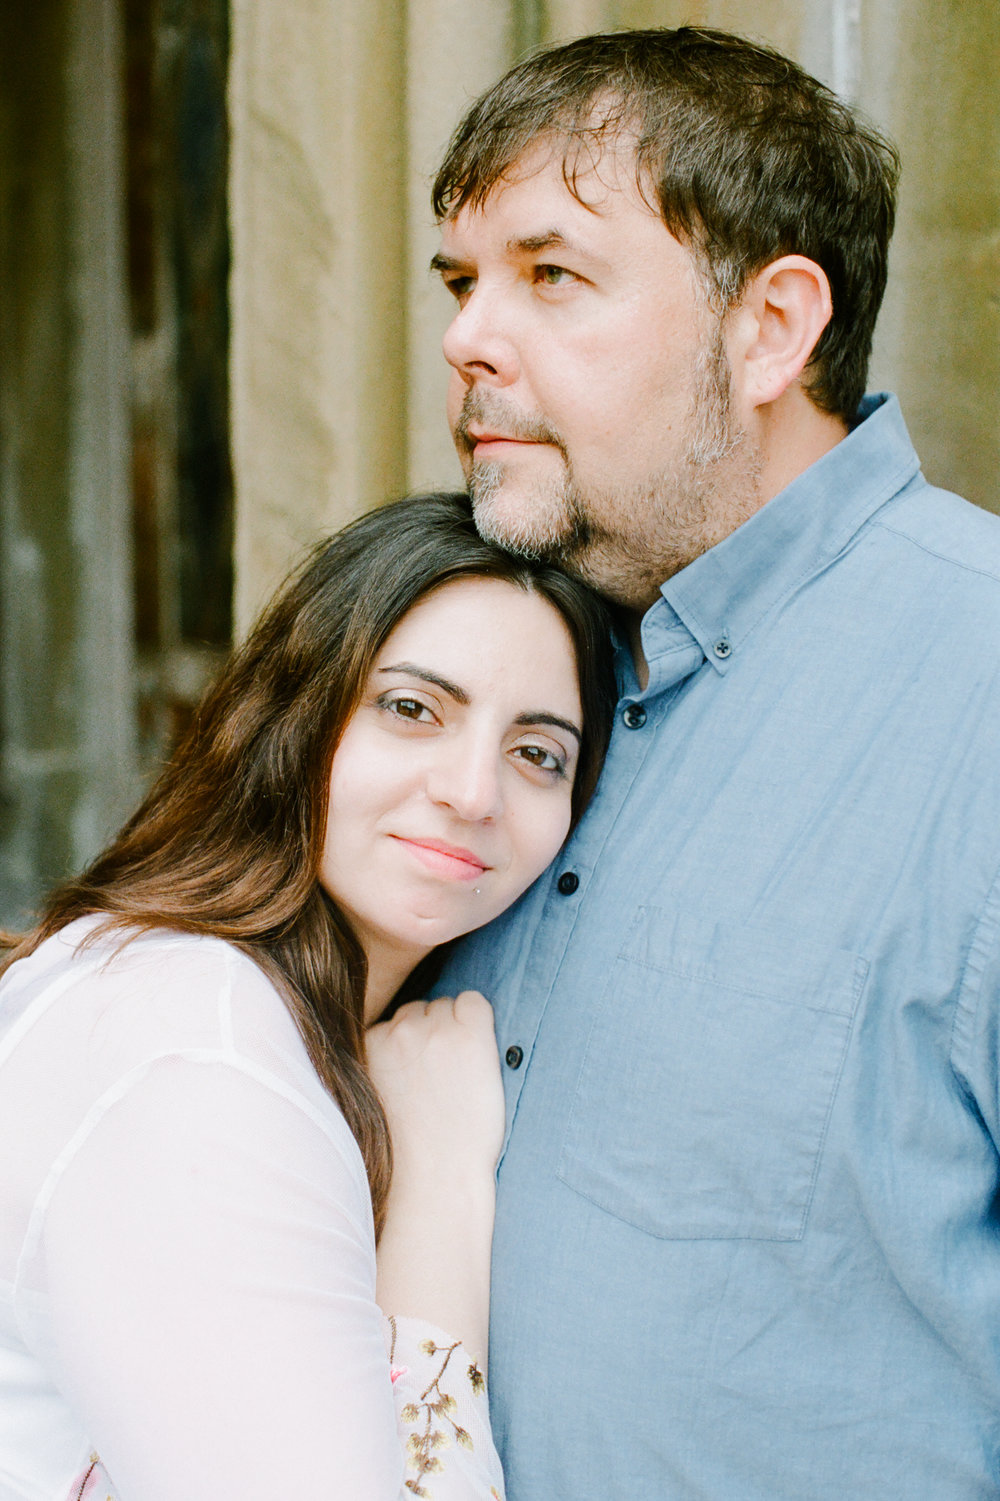 Central-Park-NYC-Engagement-Session-film-photography-46.jpg